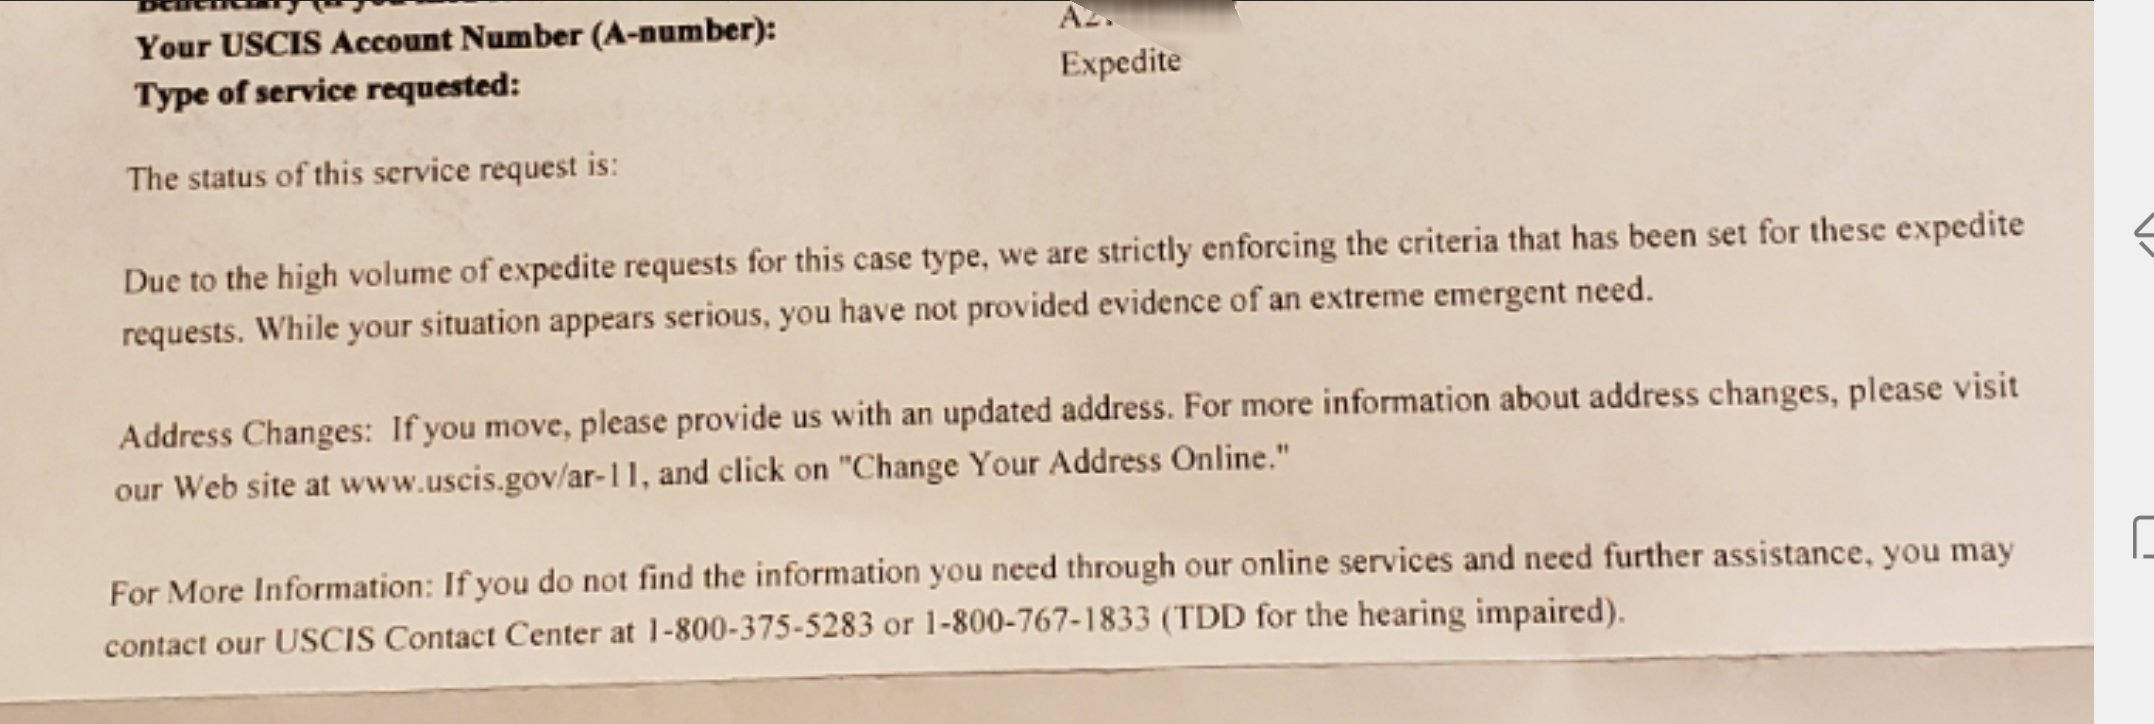 EAD Expedite Timeline After Fax Request - Page 39 - Adjustment of